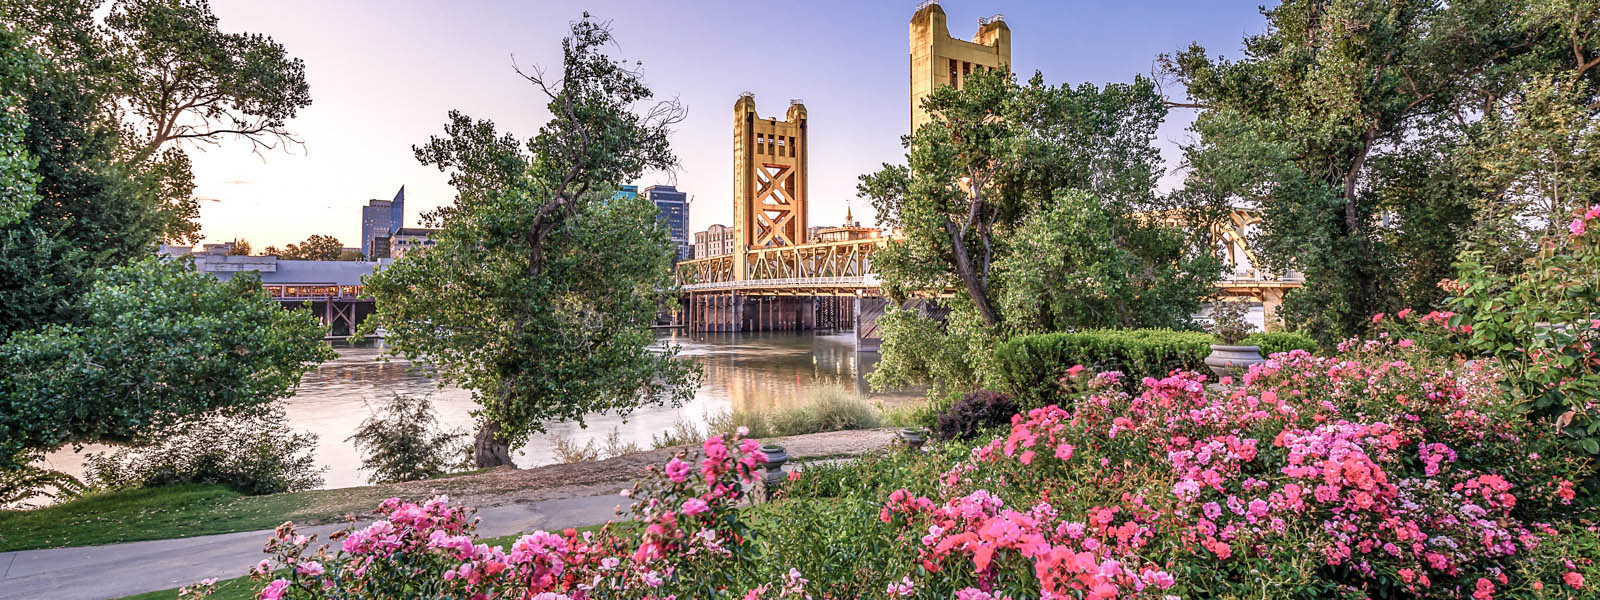 A view of a bridge in Sacramento taken from flower bushes and trees